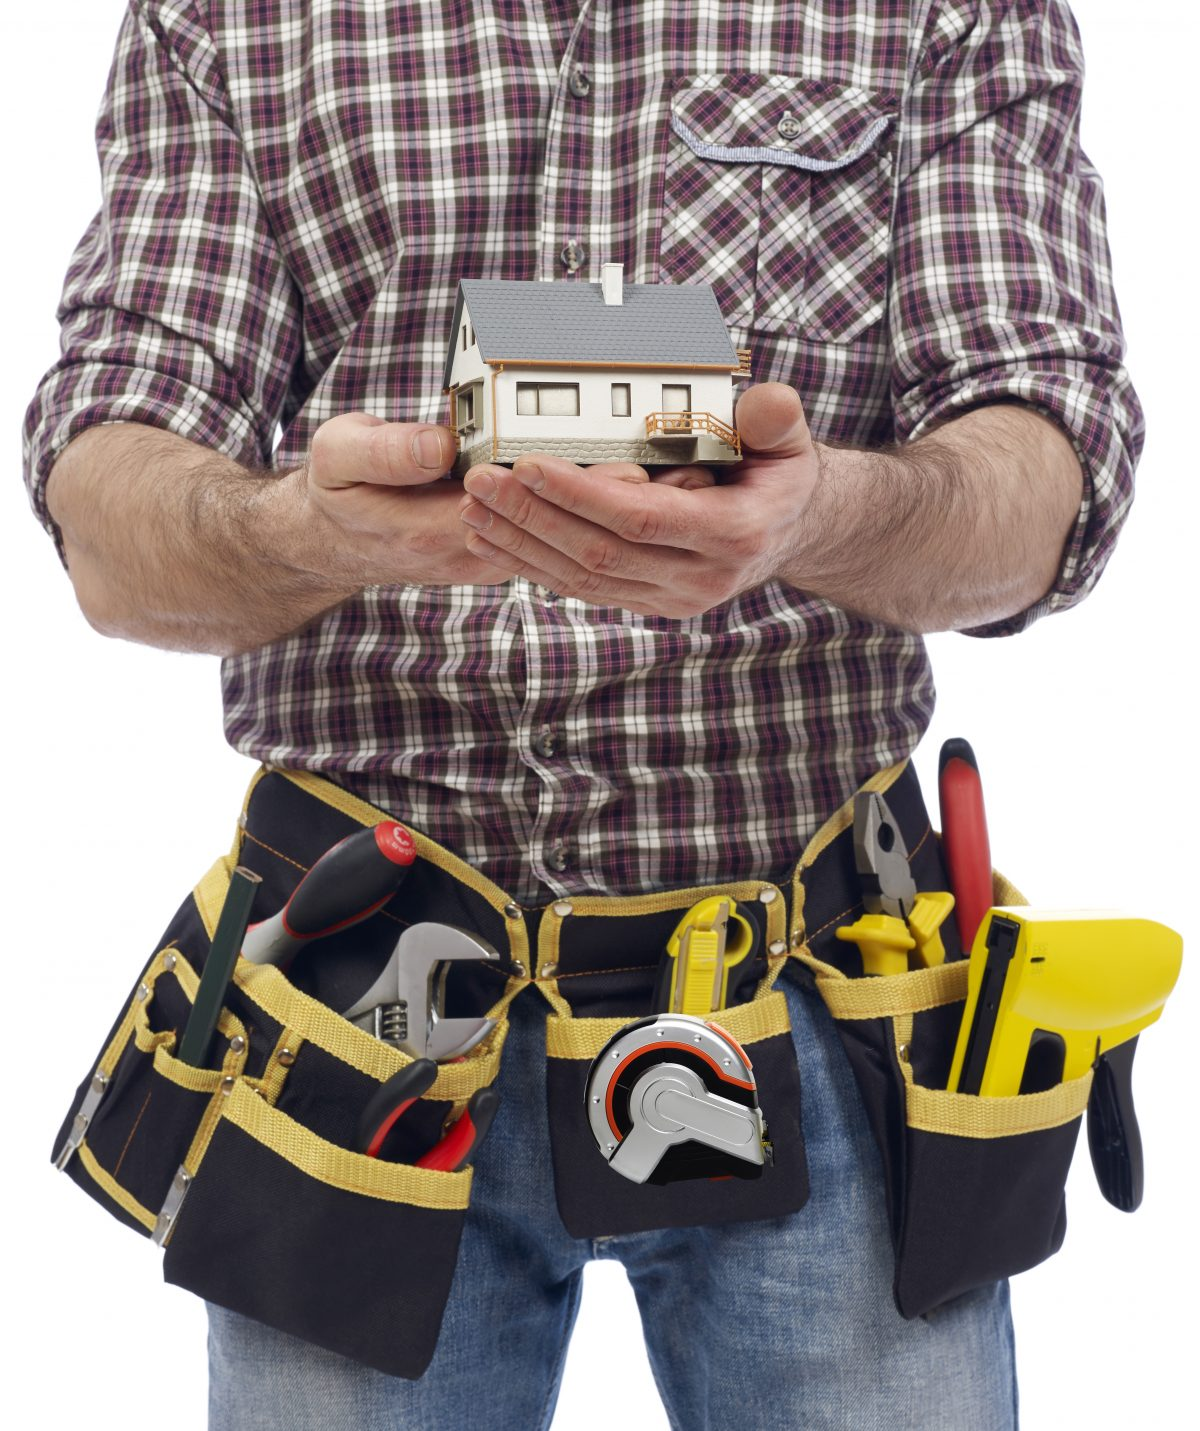 Home Maintenance to Focus On to Get Your House Ready for Fall